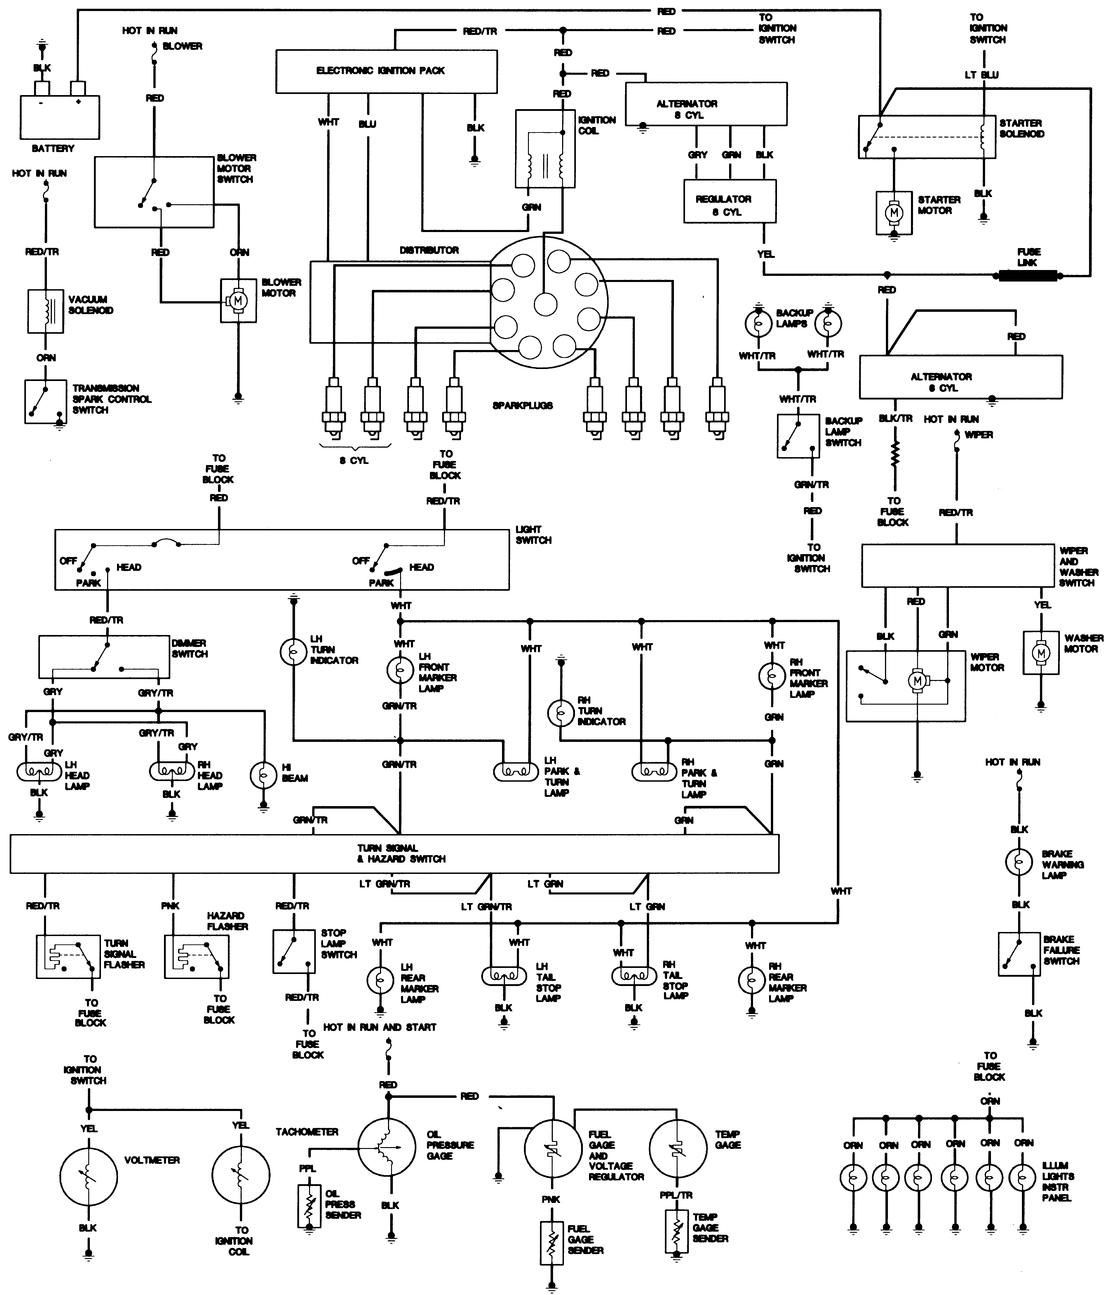 medium resolution of jeep cj5 ignition wiring wiring diagram centre 80 jeep cj5 ignition wiring